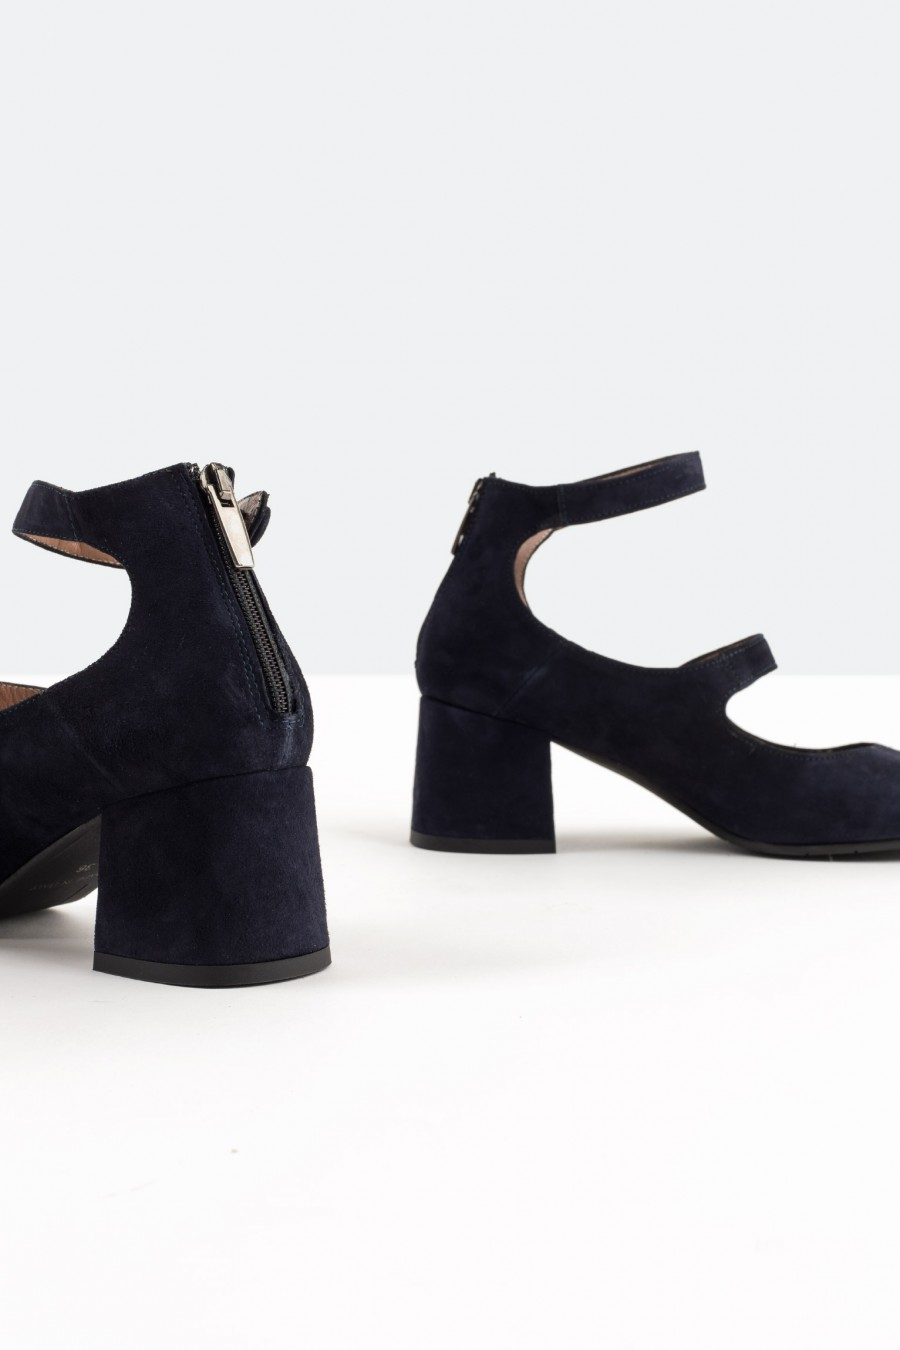 Lazzari navy suede Mary Jane shoes